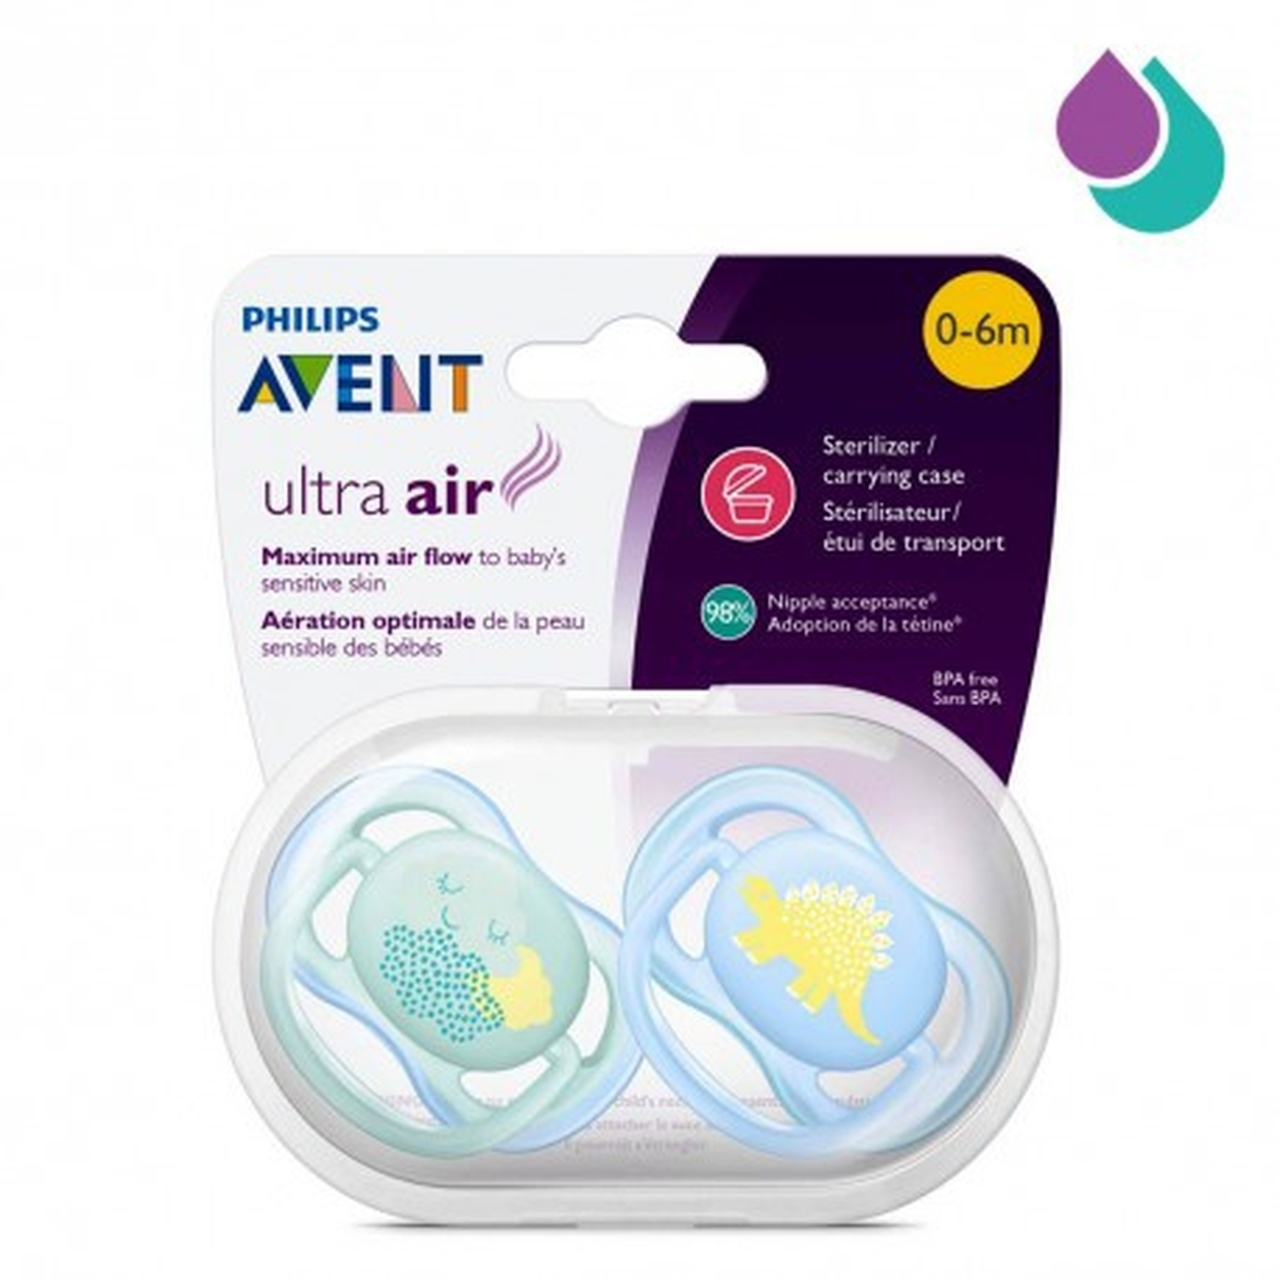 Avent Ultra Air Soother 0-6m 2pk | Baby Barn Discounts Design ensures natural development of palate, teeth and gums even if it ends up upside down in your baby's mouth.